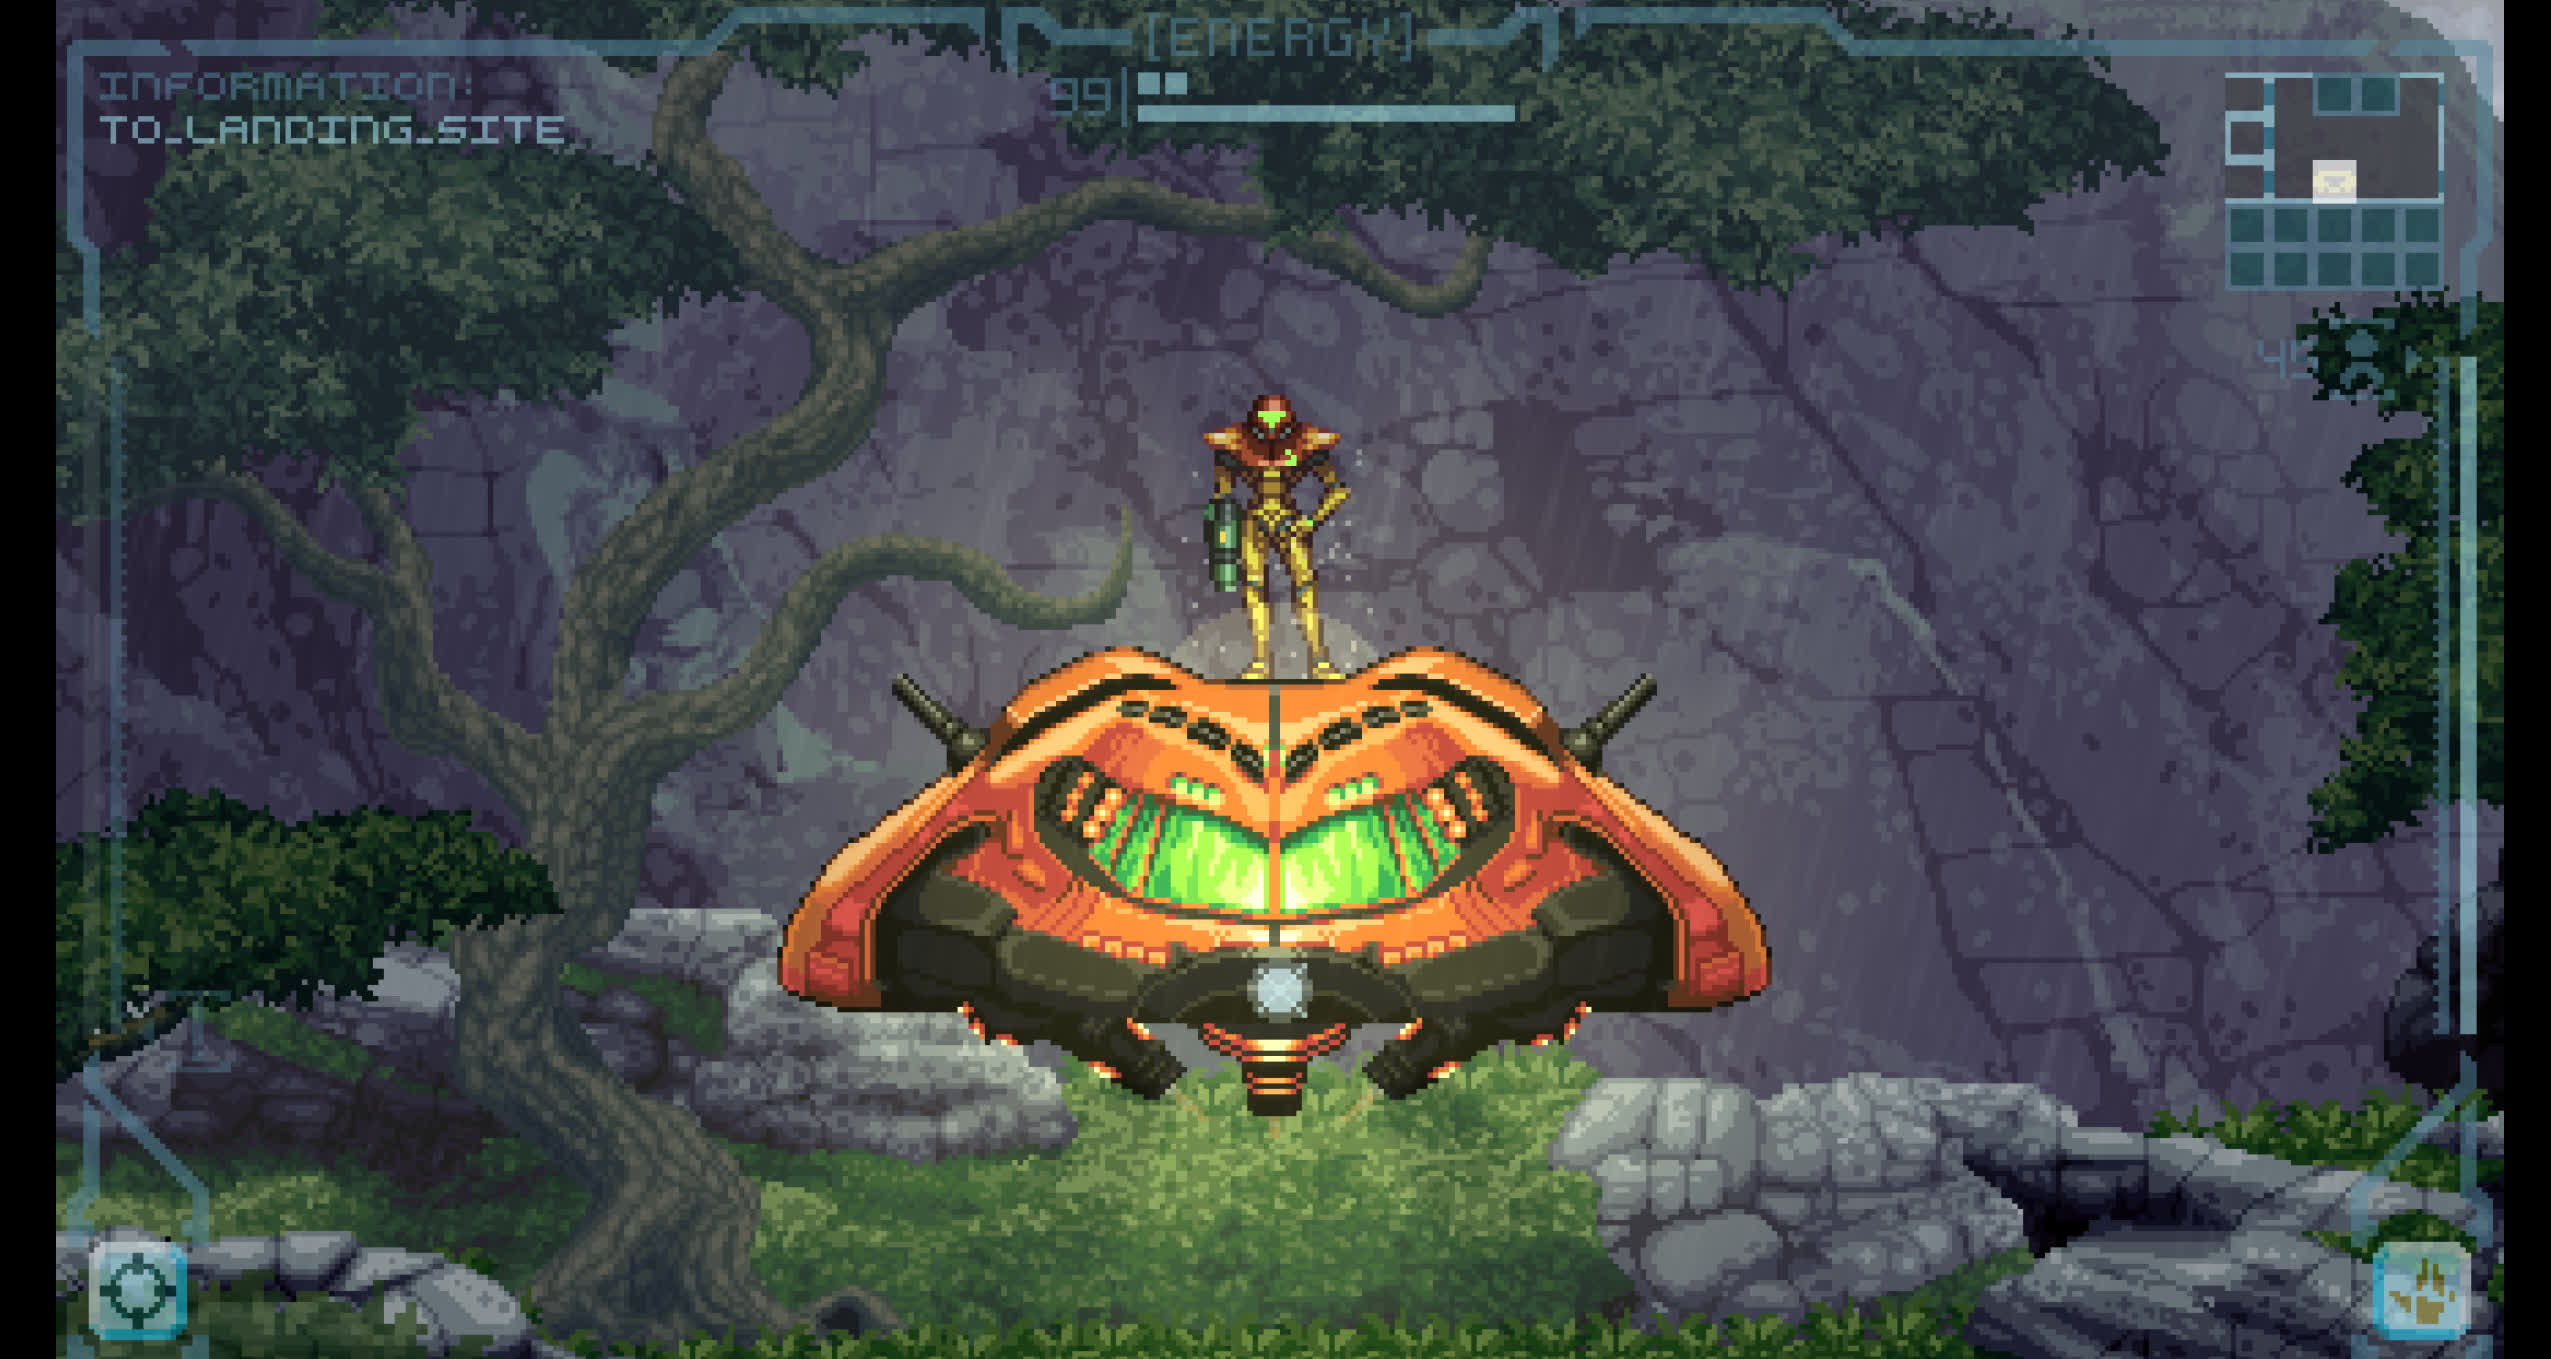 This playable Metroid Prime 2D fan creation took more than 15 years to make